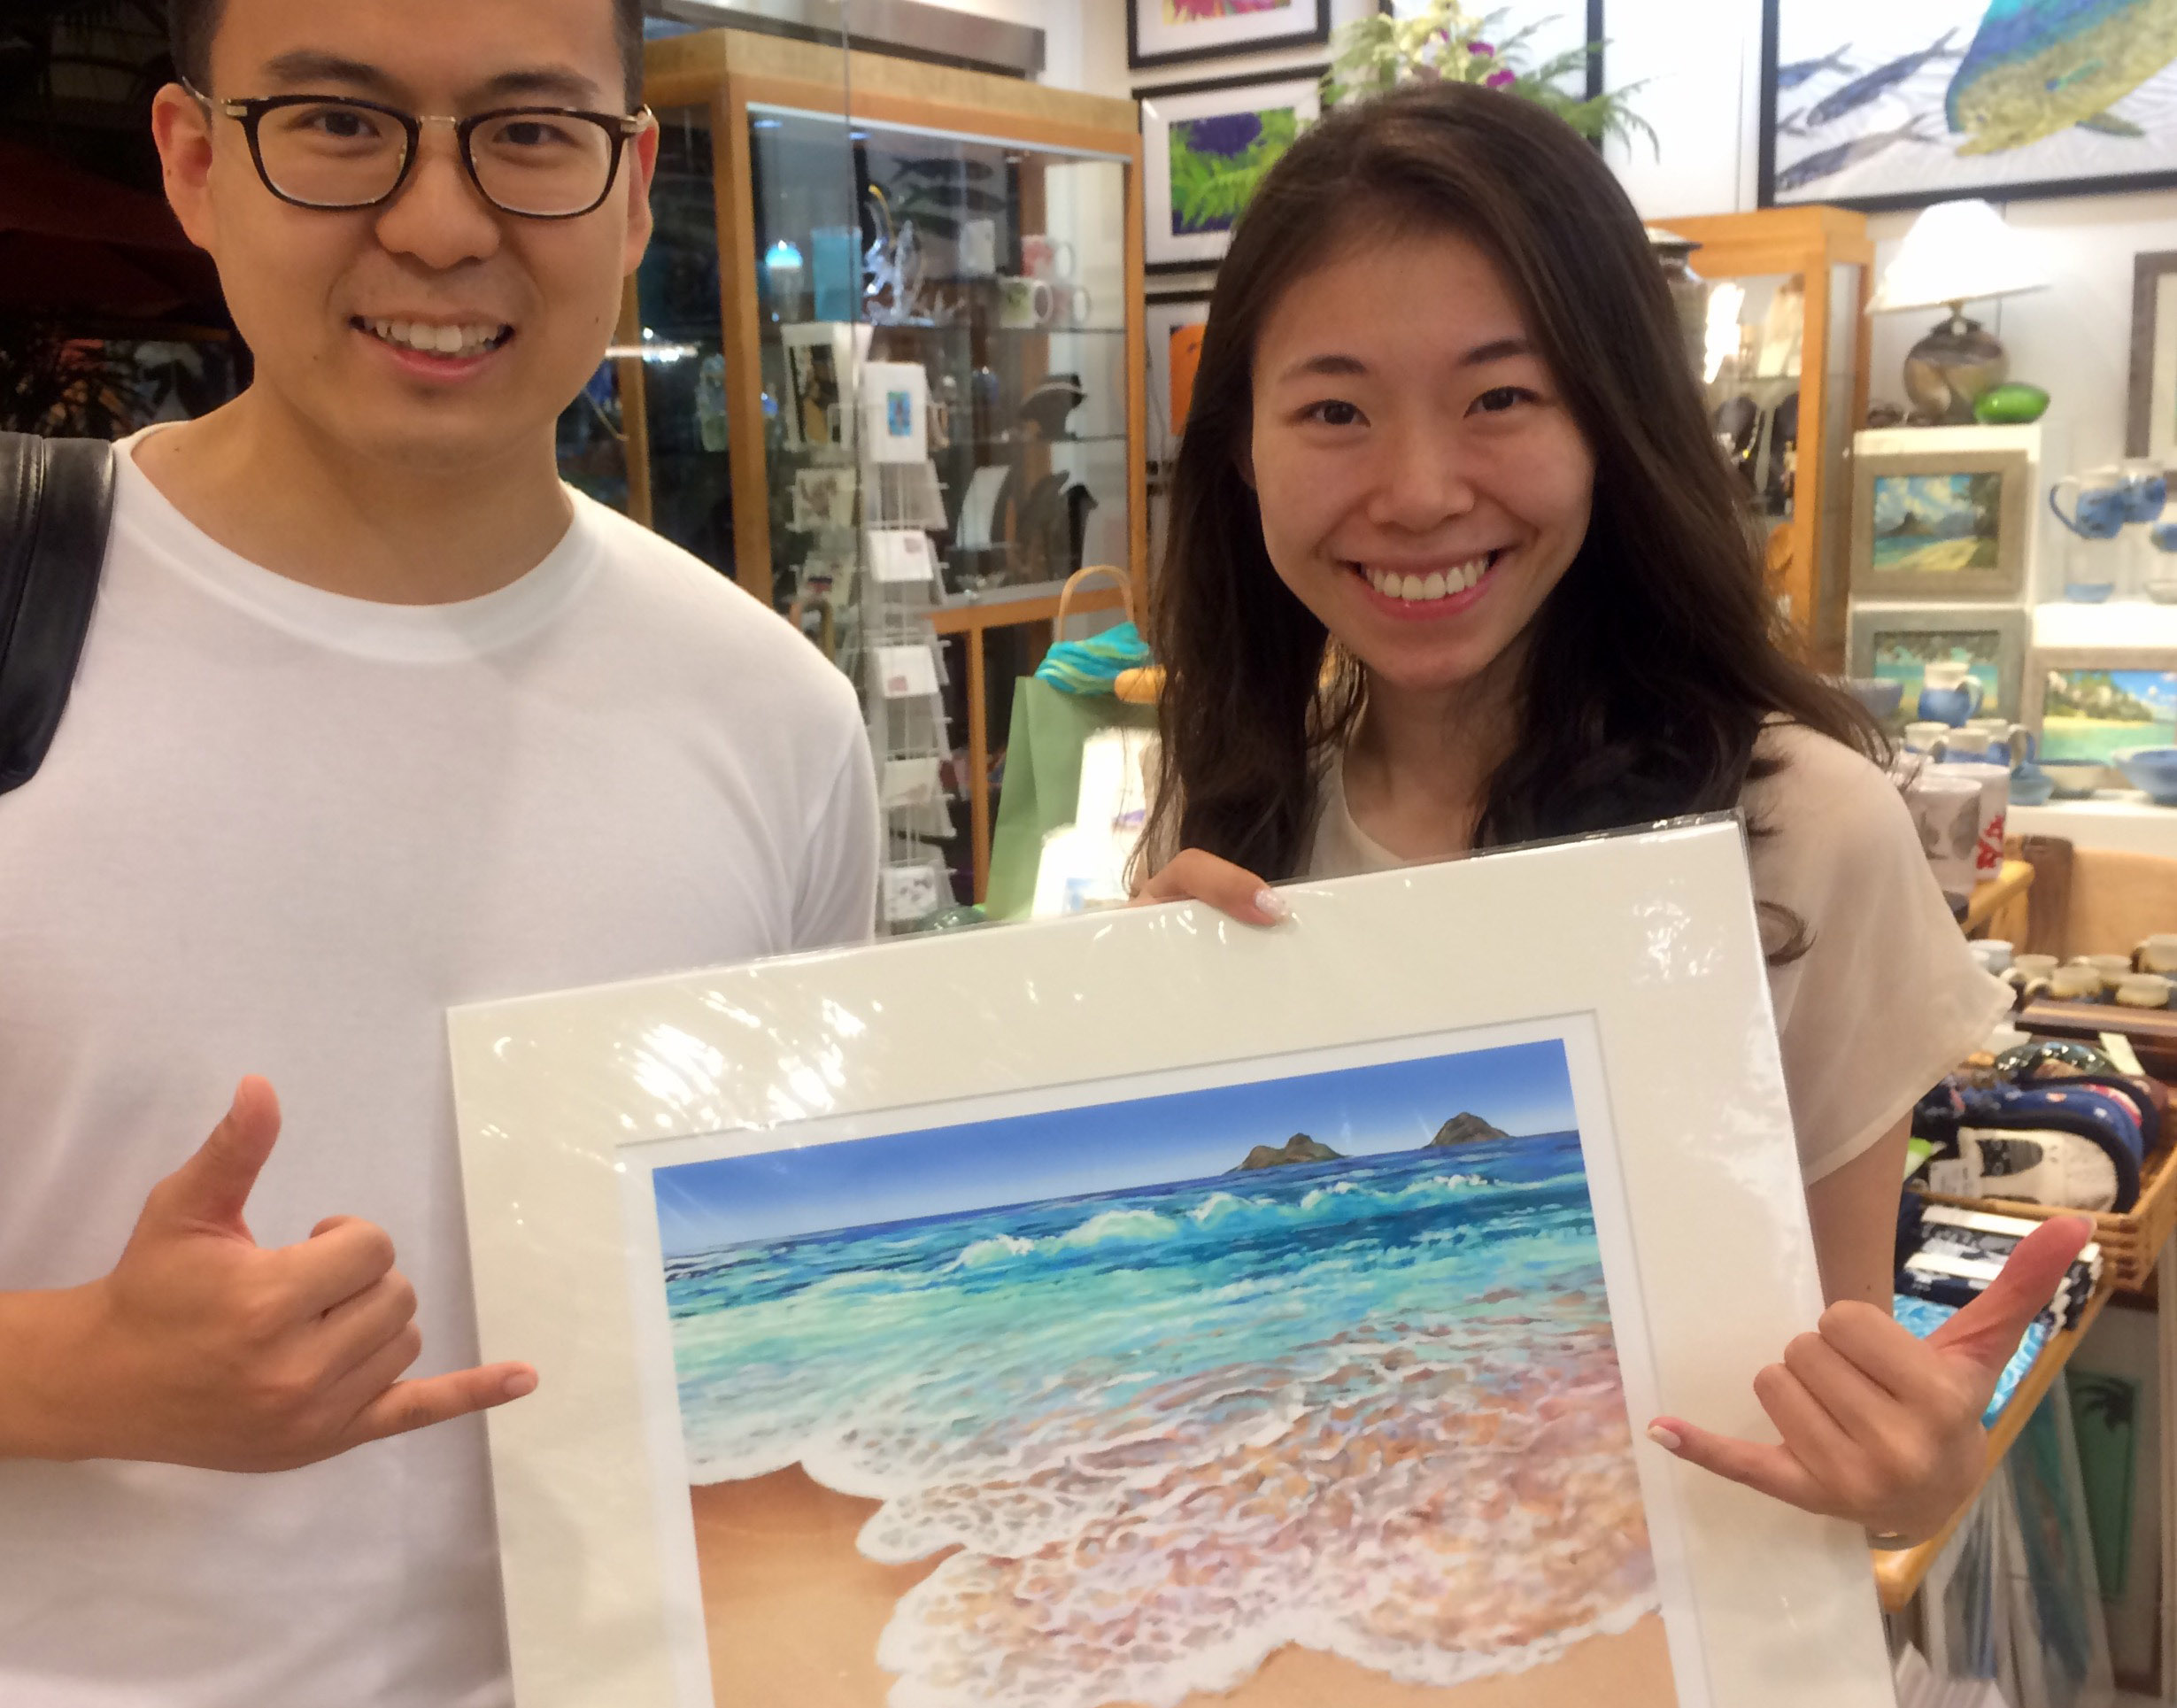 I Met this cute couple from Beijing who were choosing some of my artwork at nohea gallery, Waikiki.